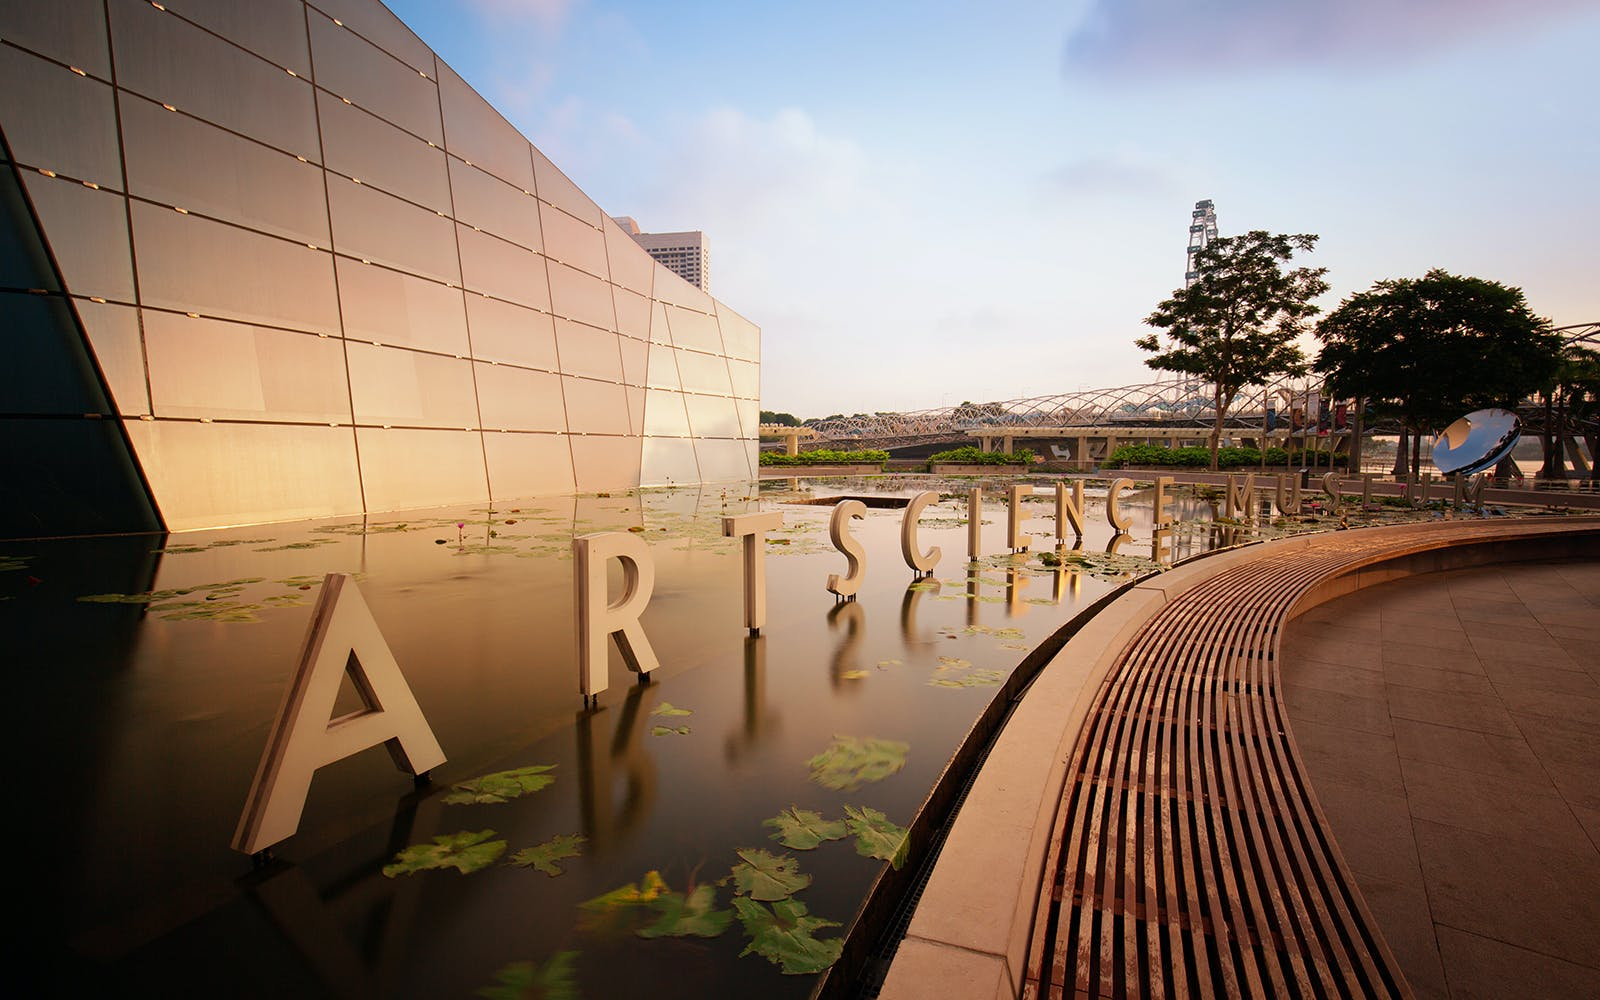 art science museum- 5 day Singapore itinerary